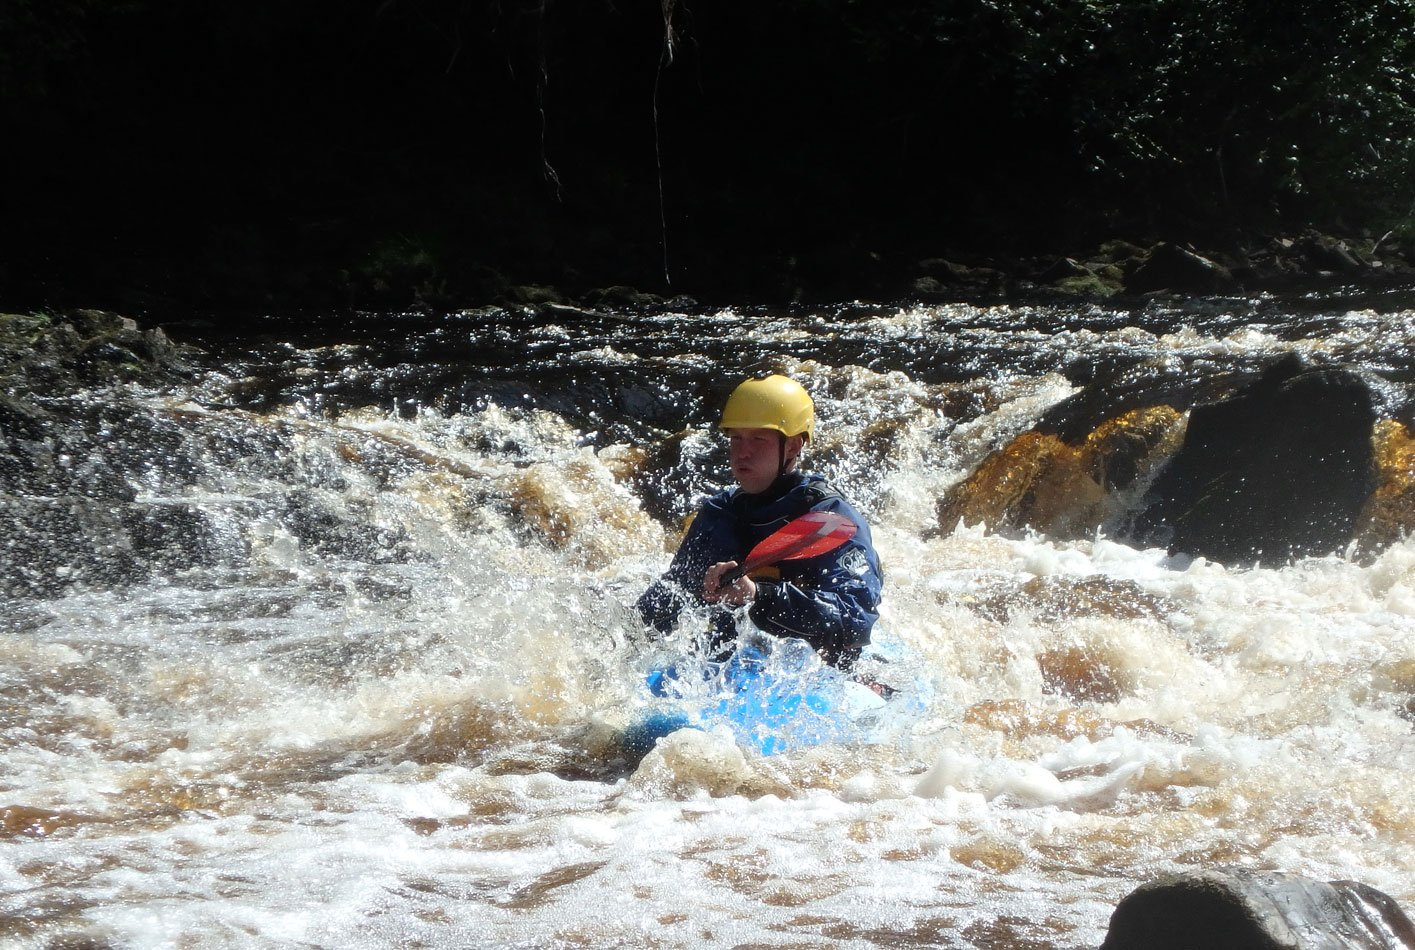 River kayaking assessment